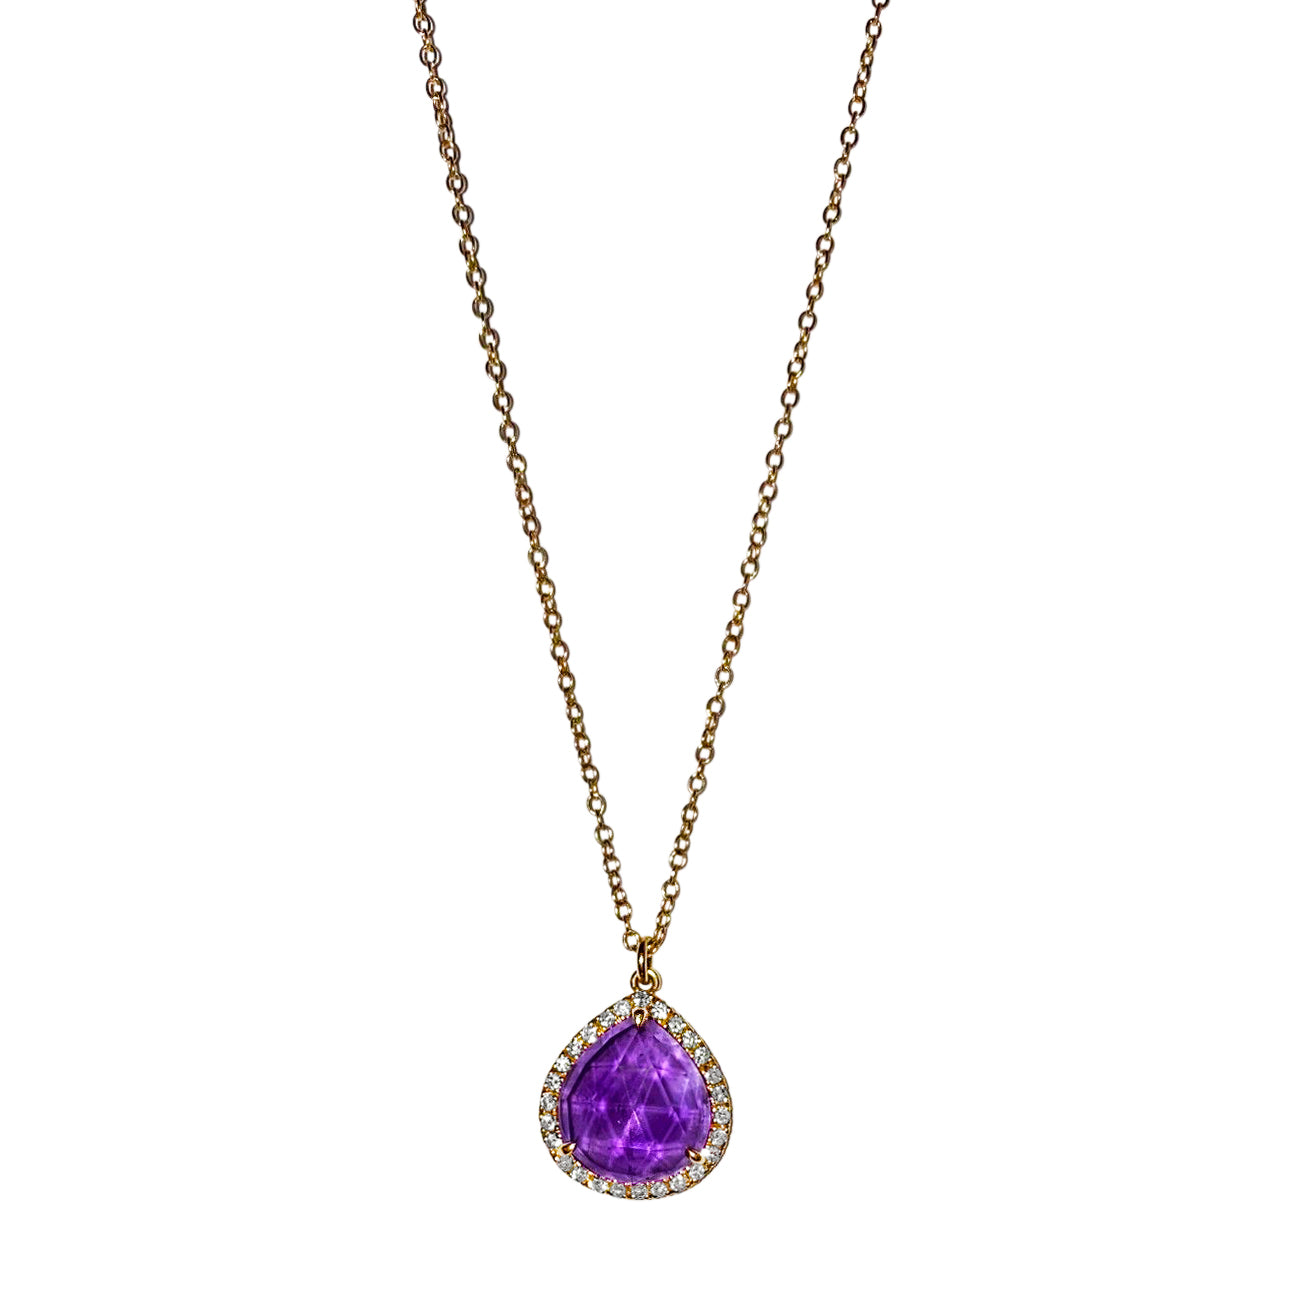 Christine Necklace Yellow Gold Amethyst